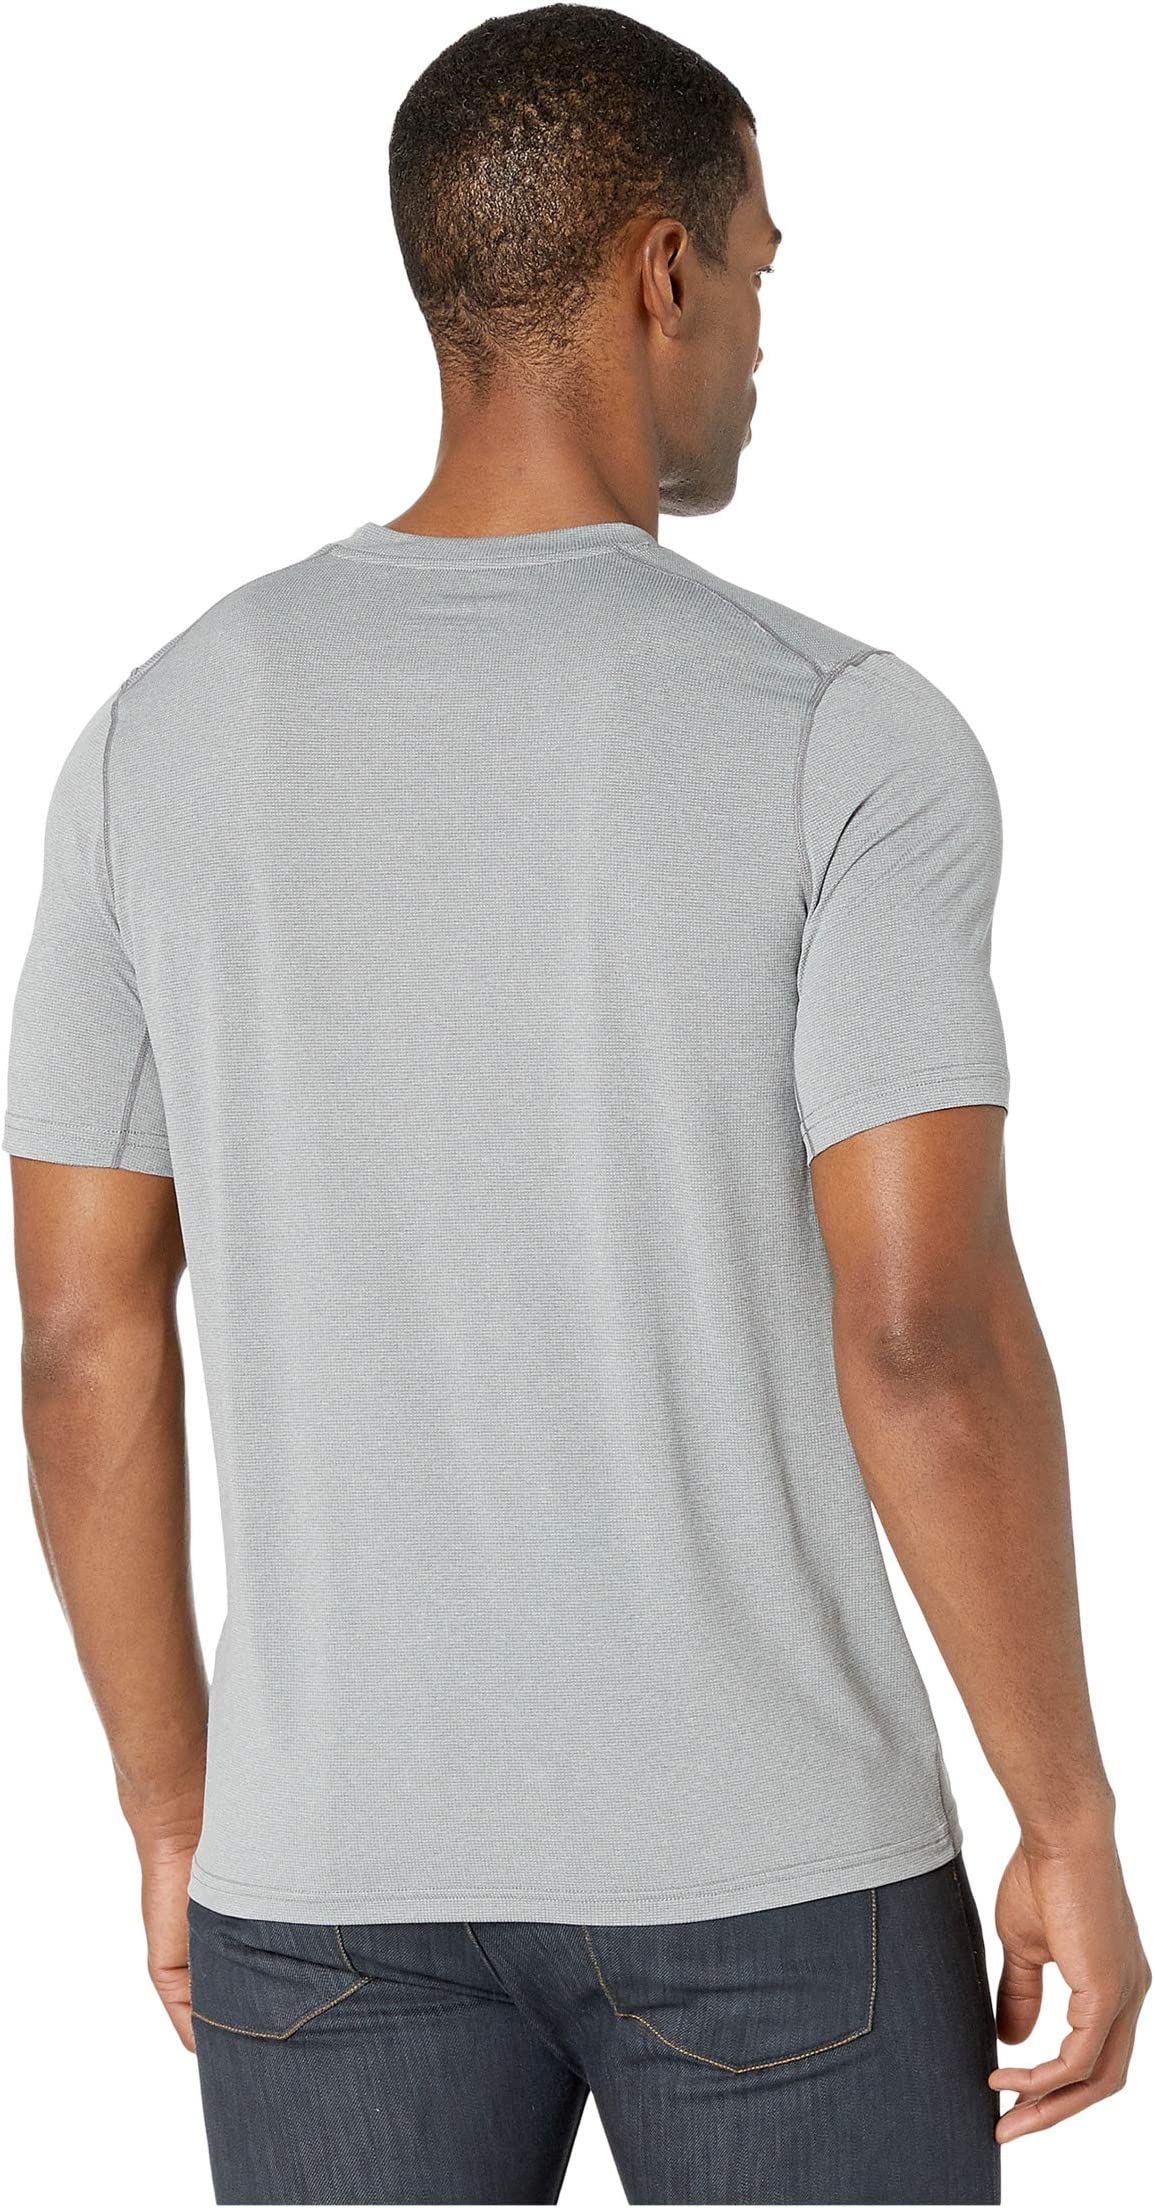 Fjällräven Abisko Day Hike Short Sleeve i4phx